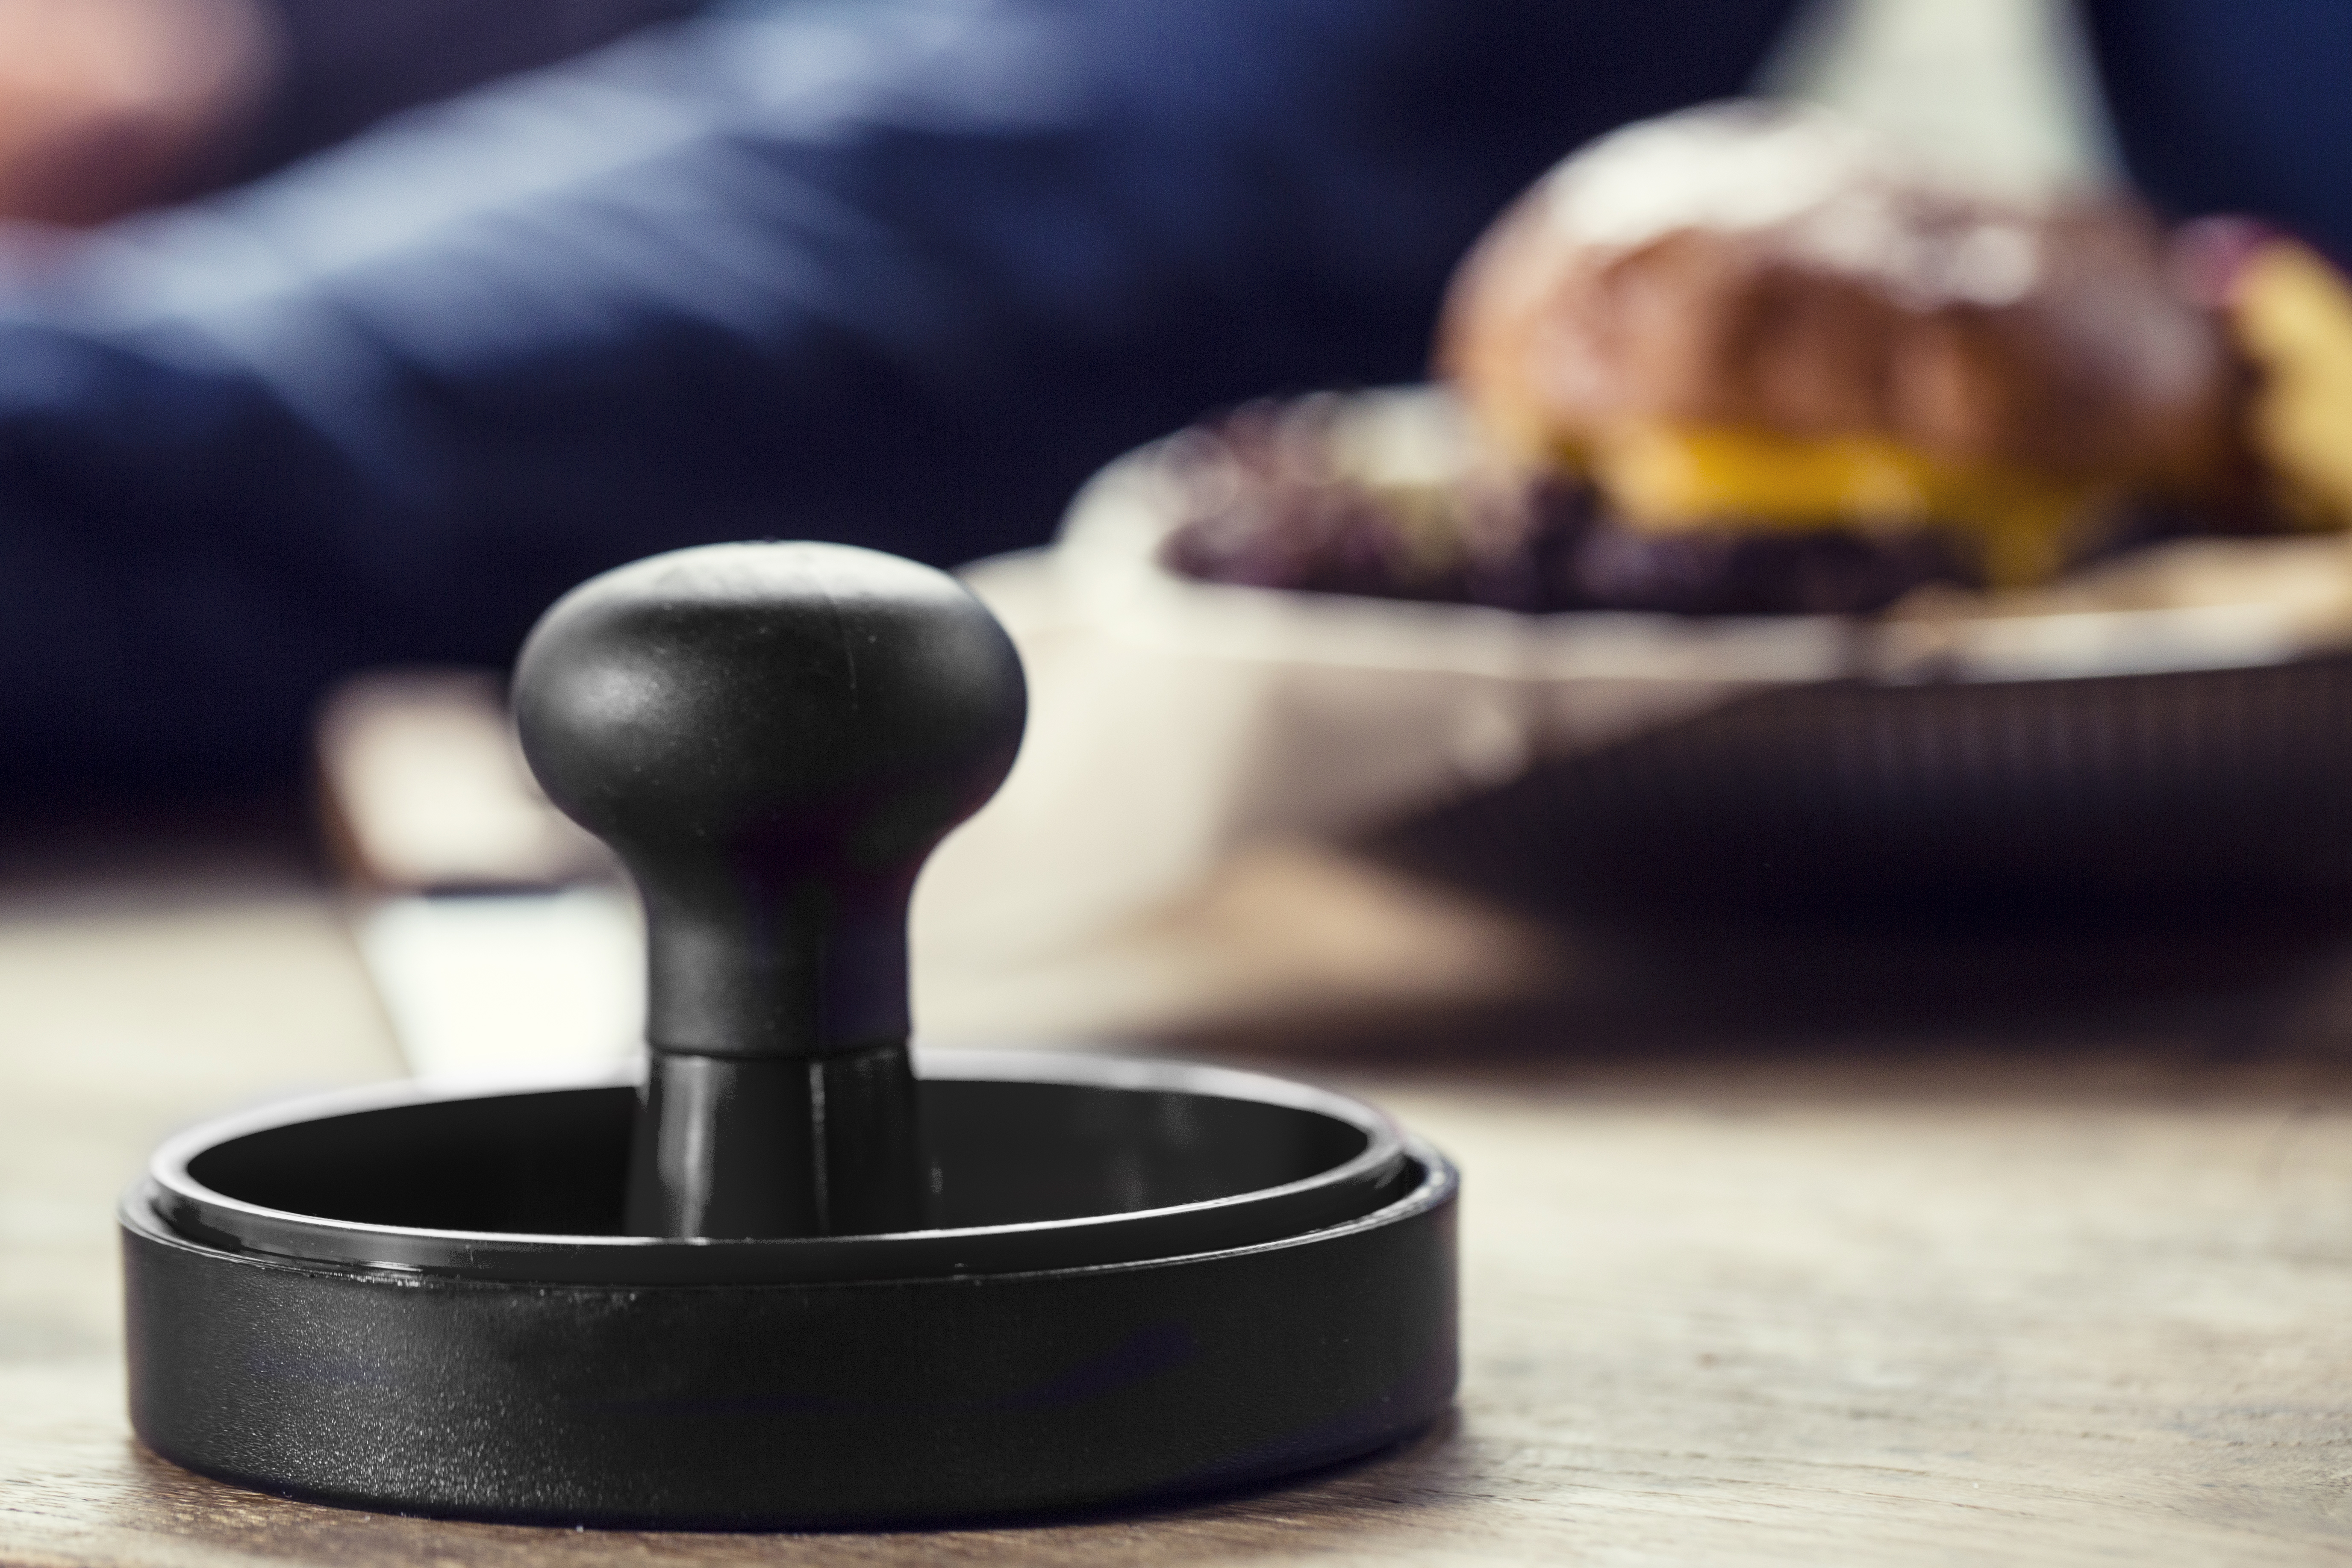 Hamburger press black